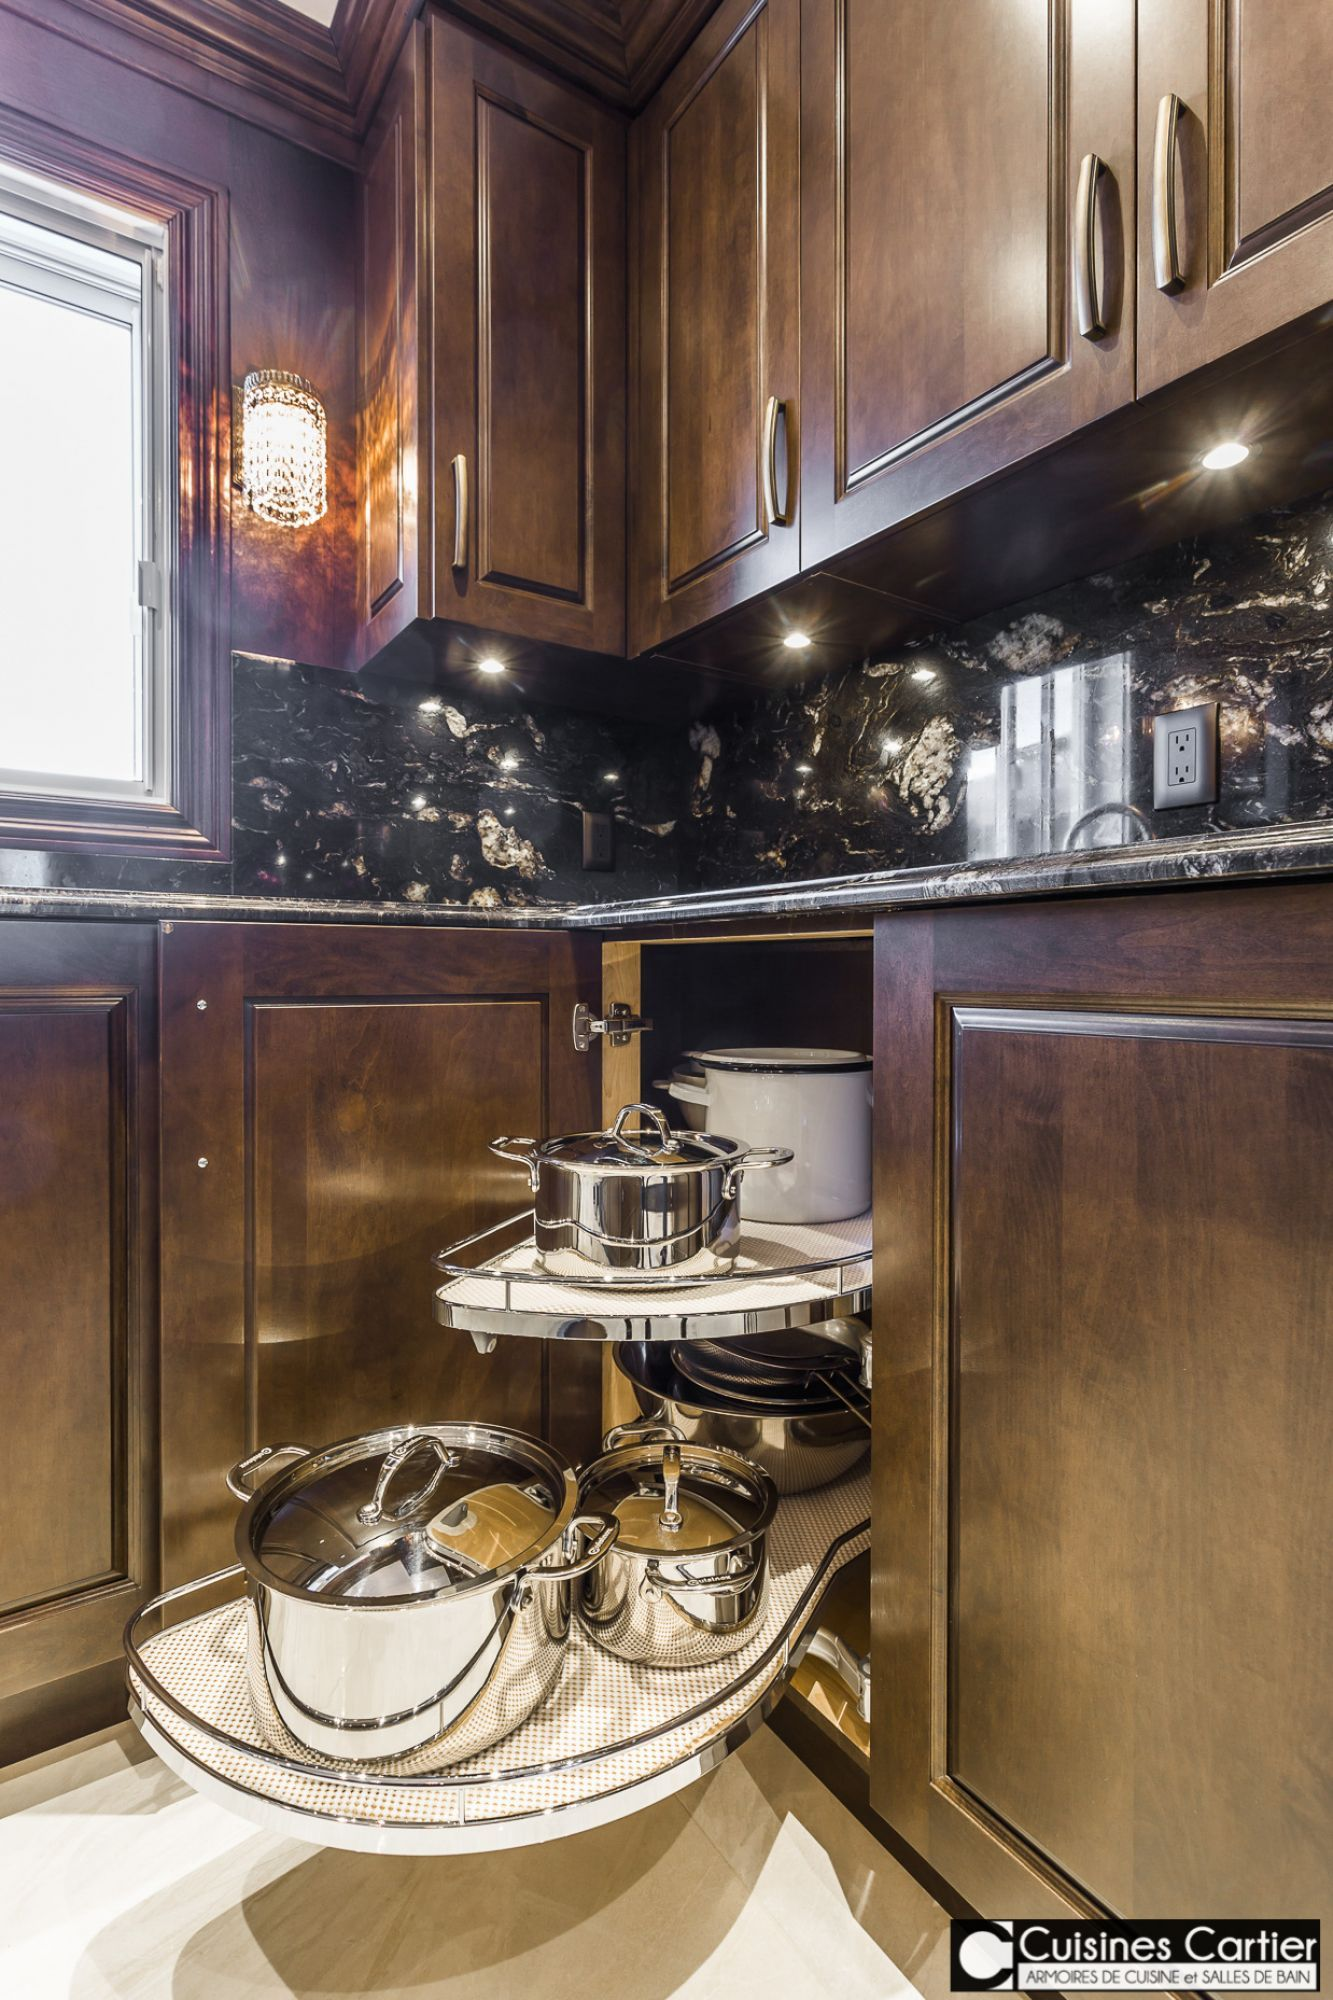 Gi Room Design: Kitchen Remodel And Essentials Image By Gi_Ca